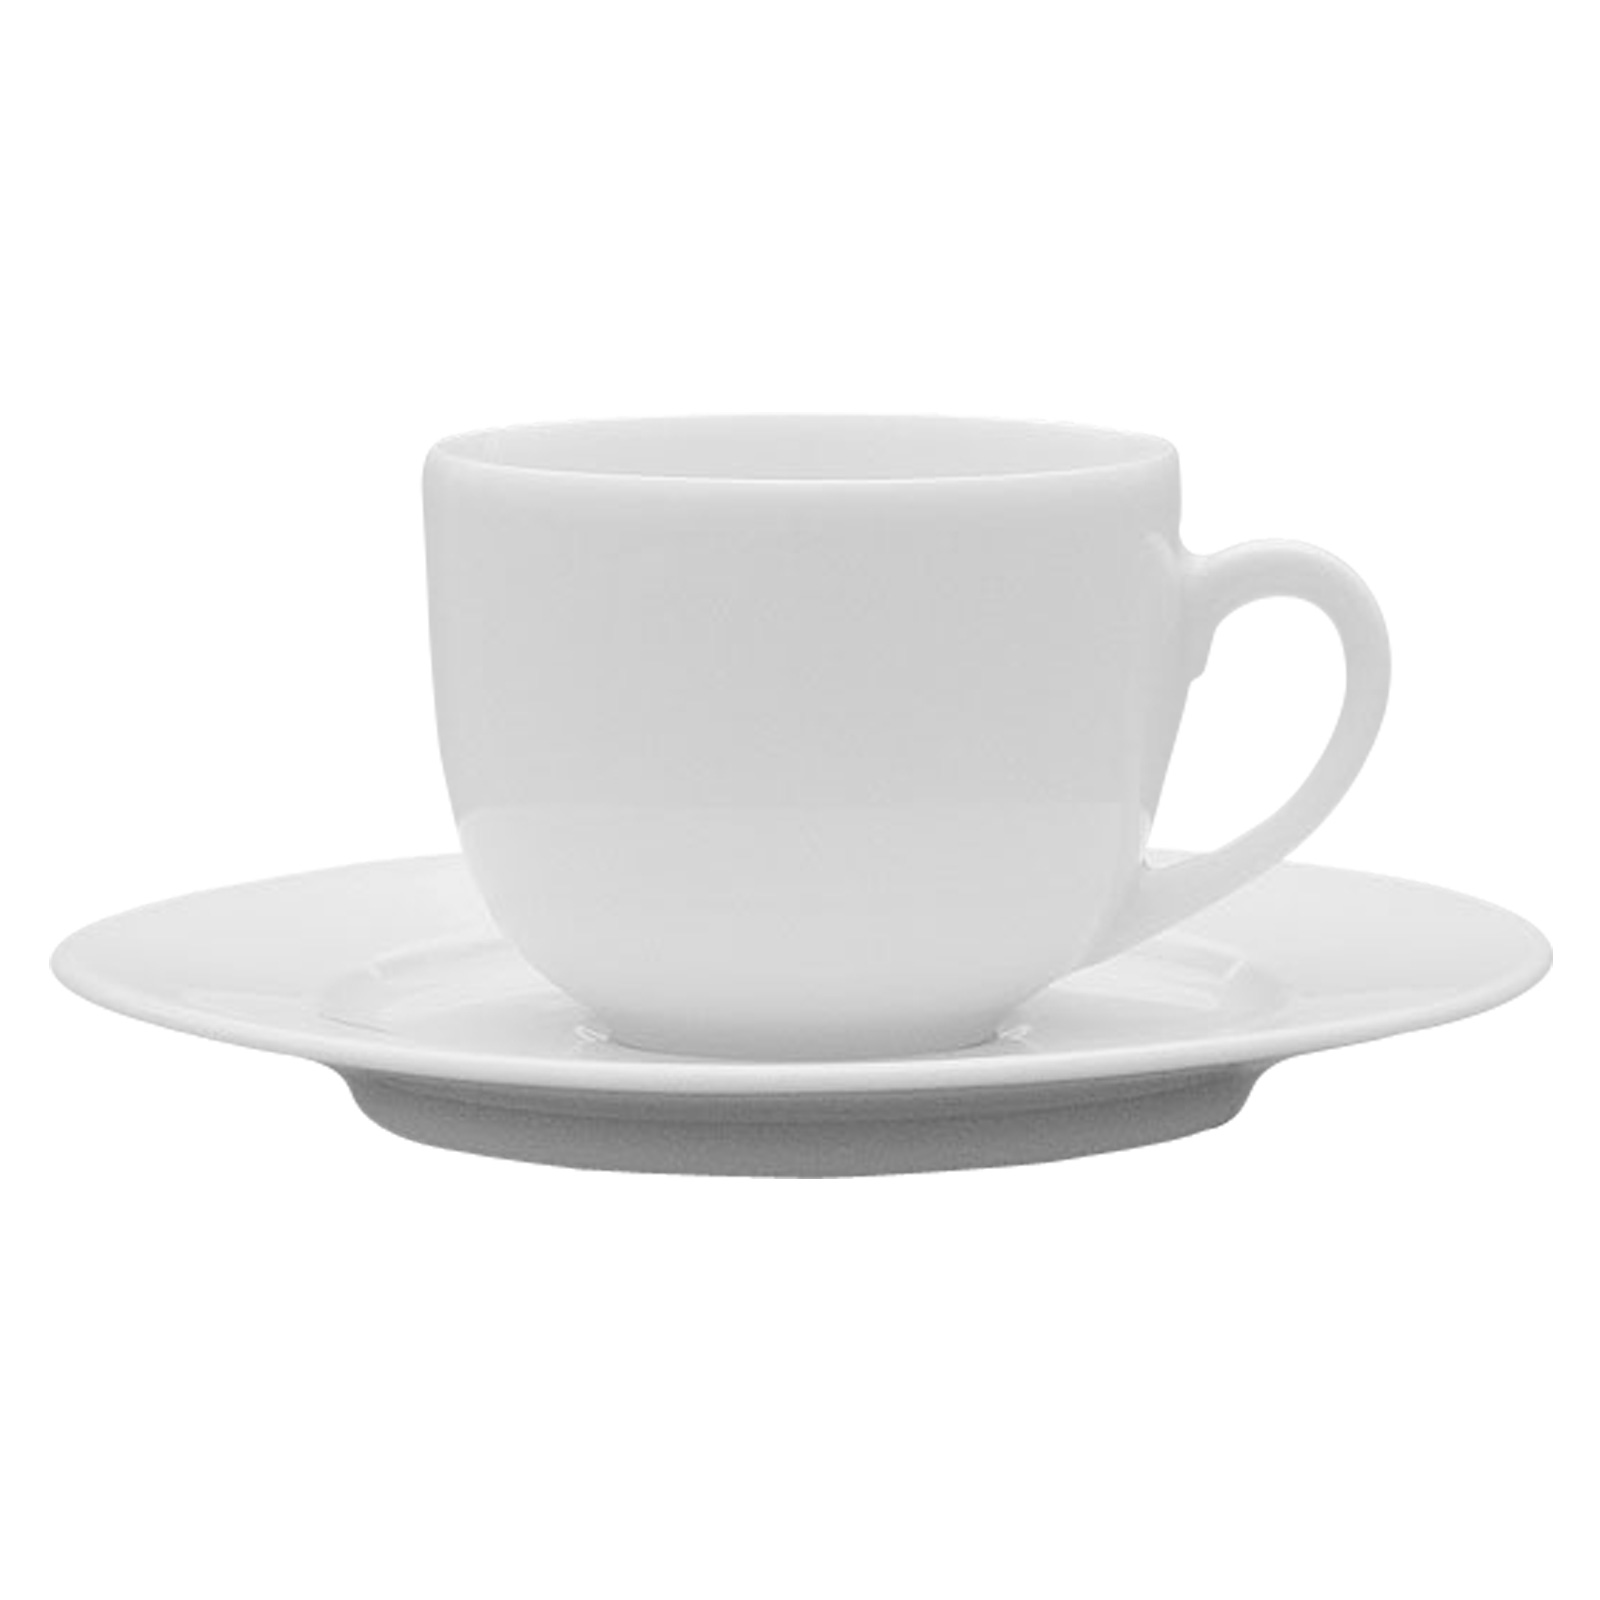 Set of 36 Sonia Coffee Saucers by Lubiana